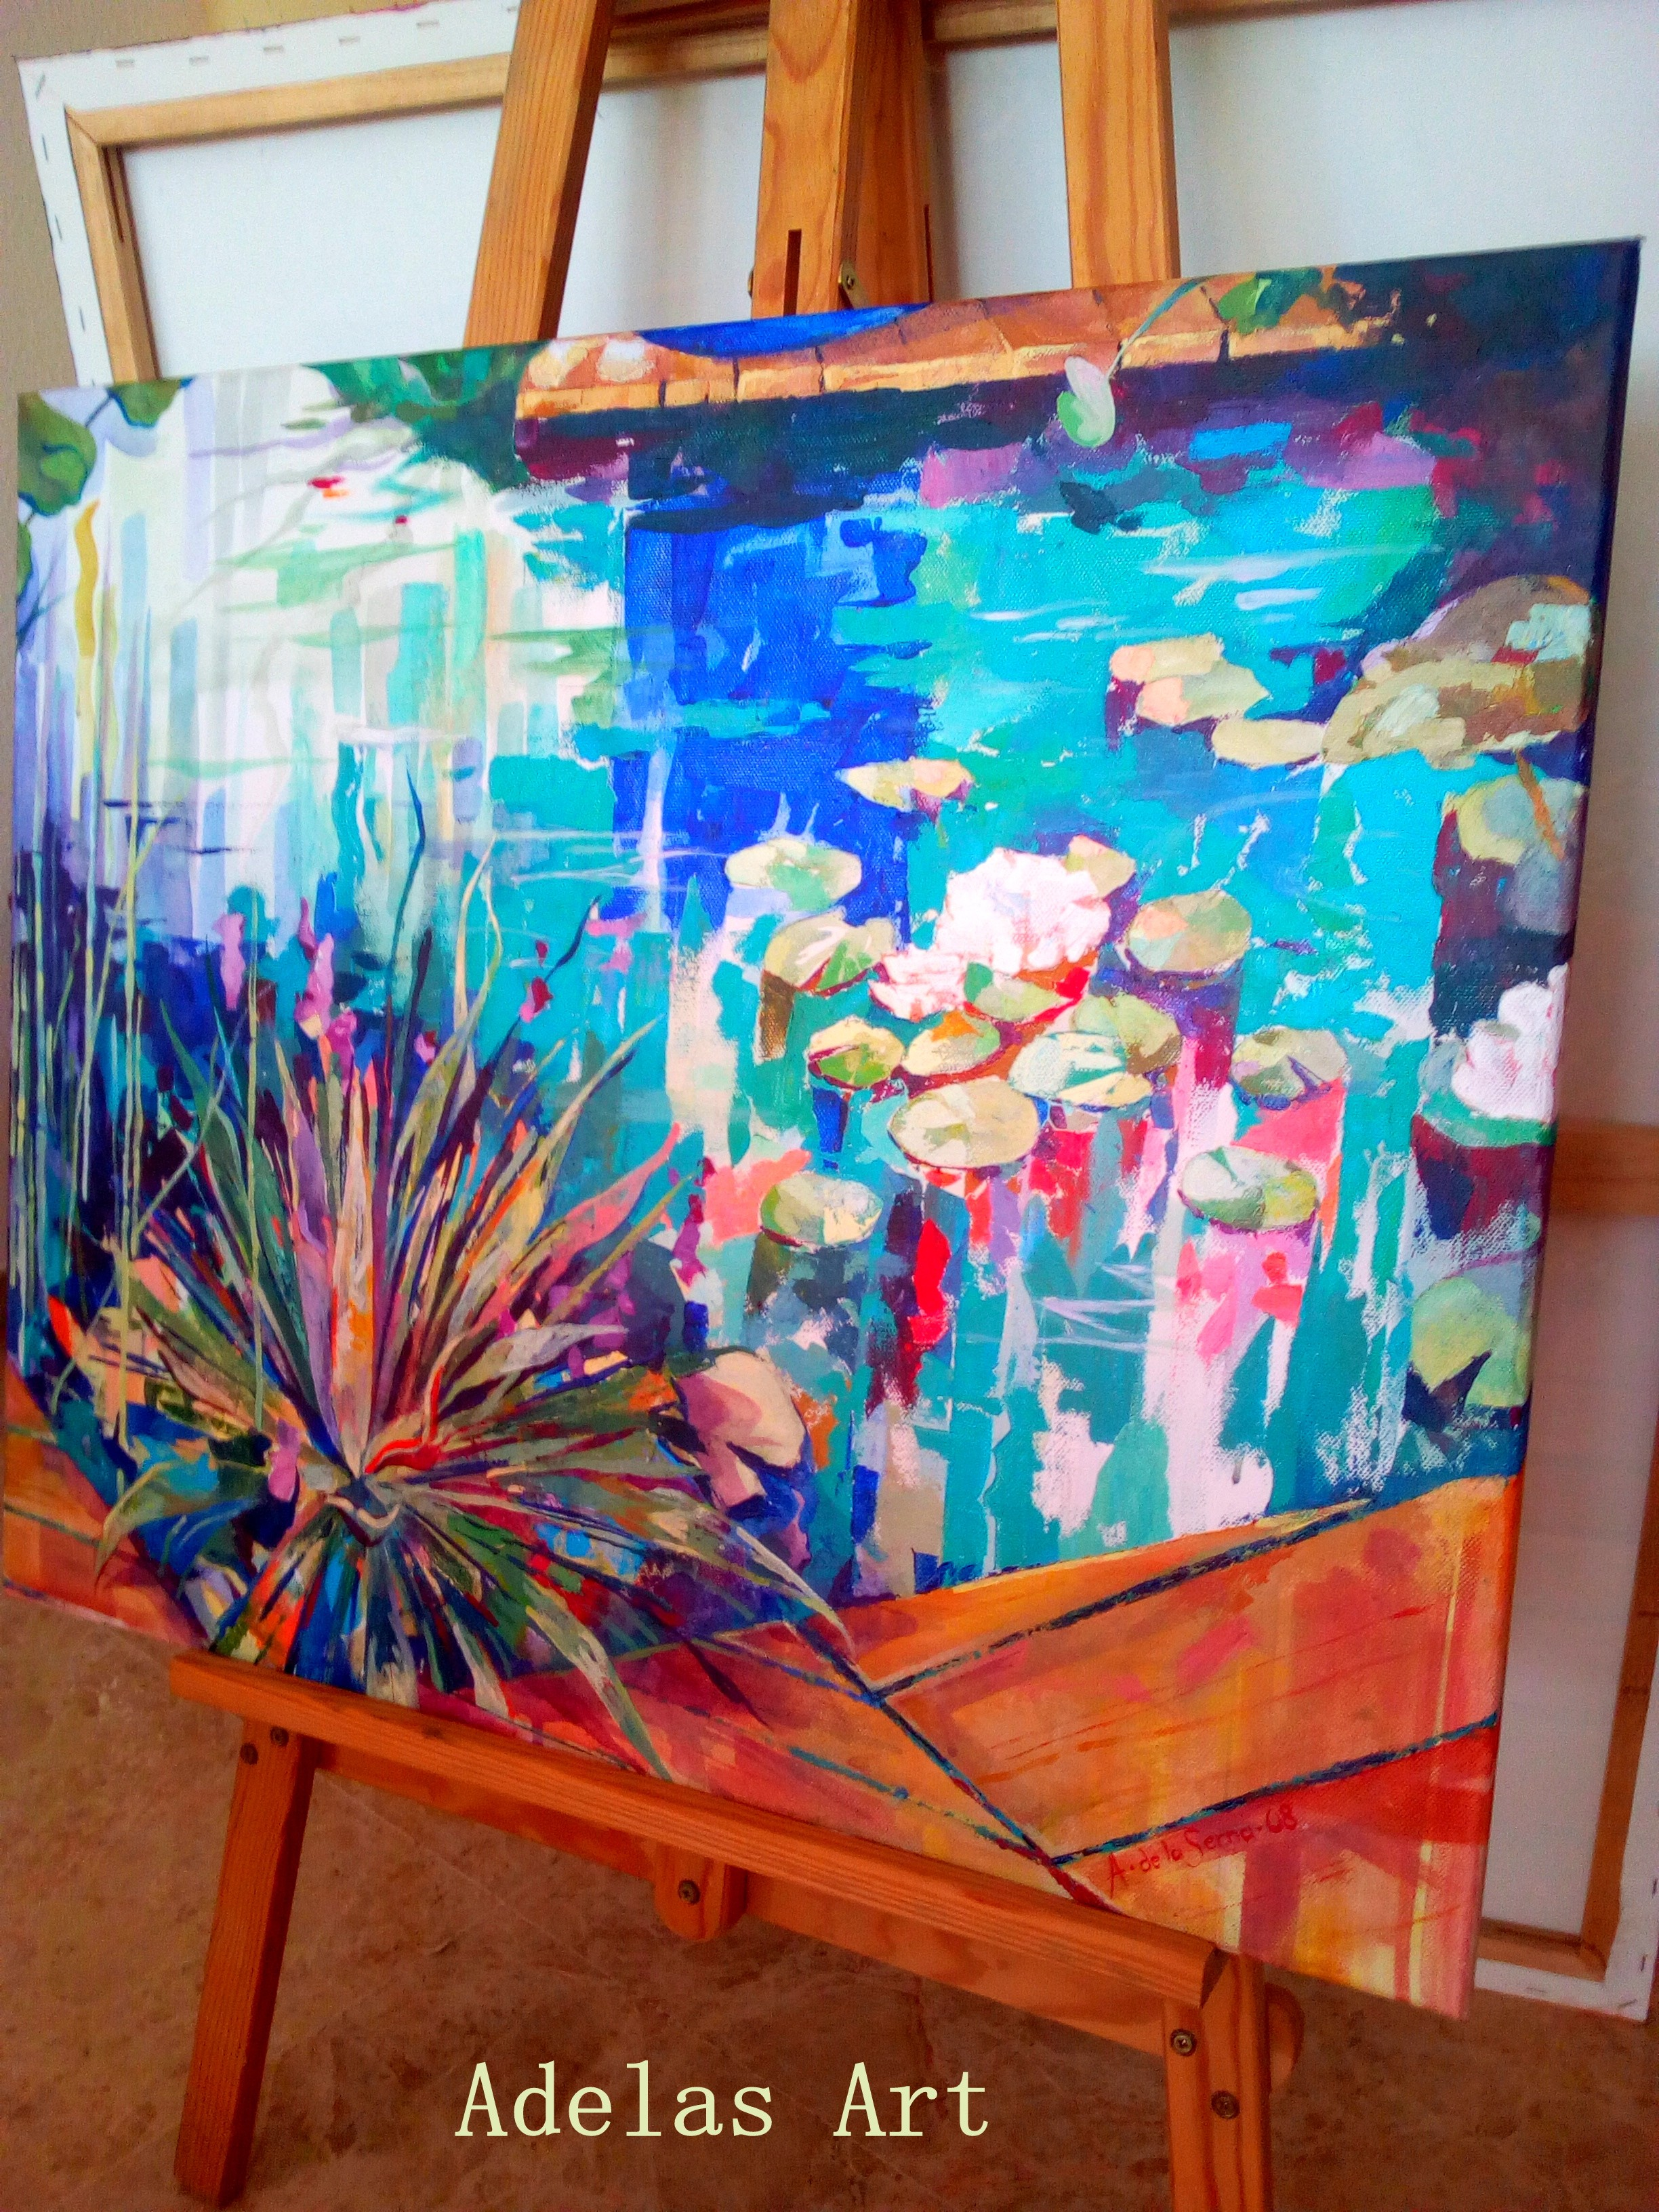 """Nymphaea alba II"" by Adelas Art - front view"